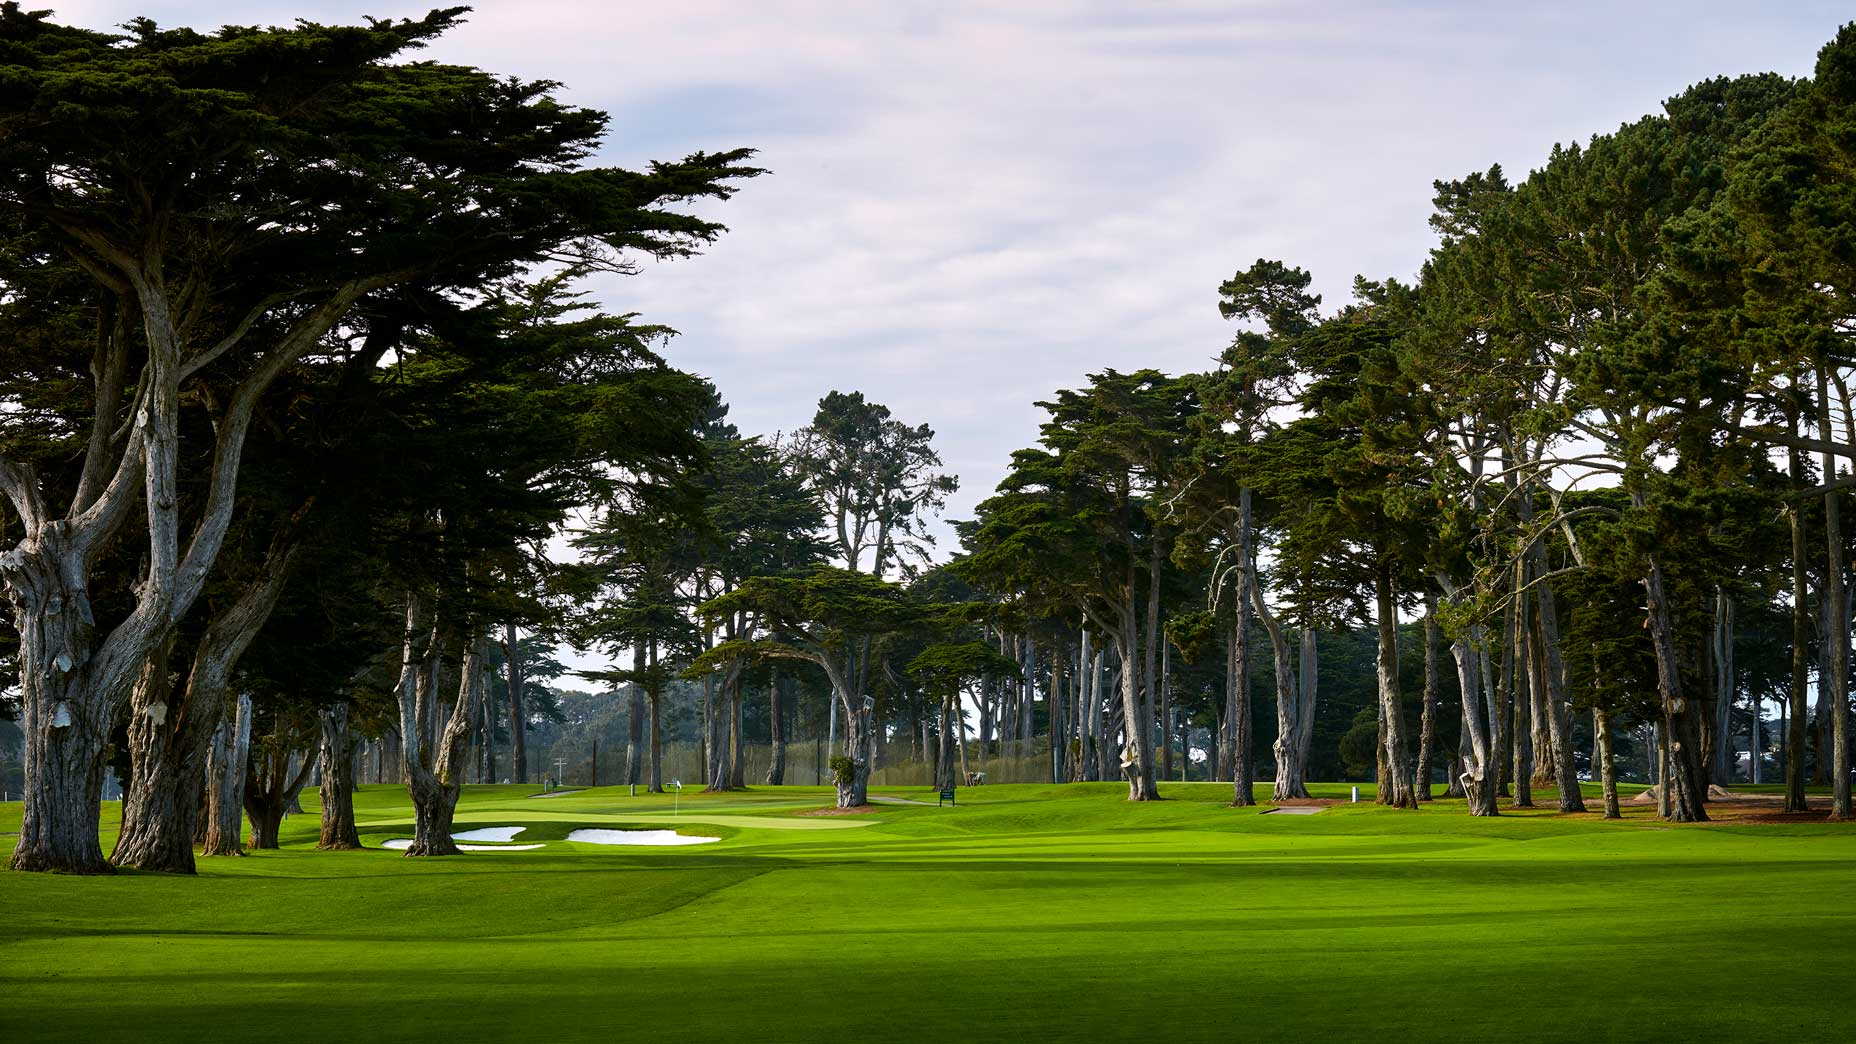 The 472-yard, par-4 6th hole at TPC Harding Park in 2018.